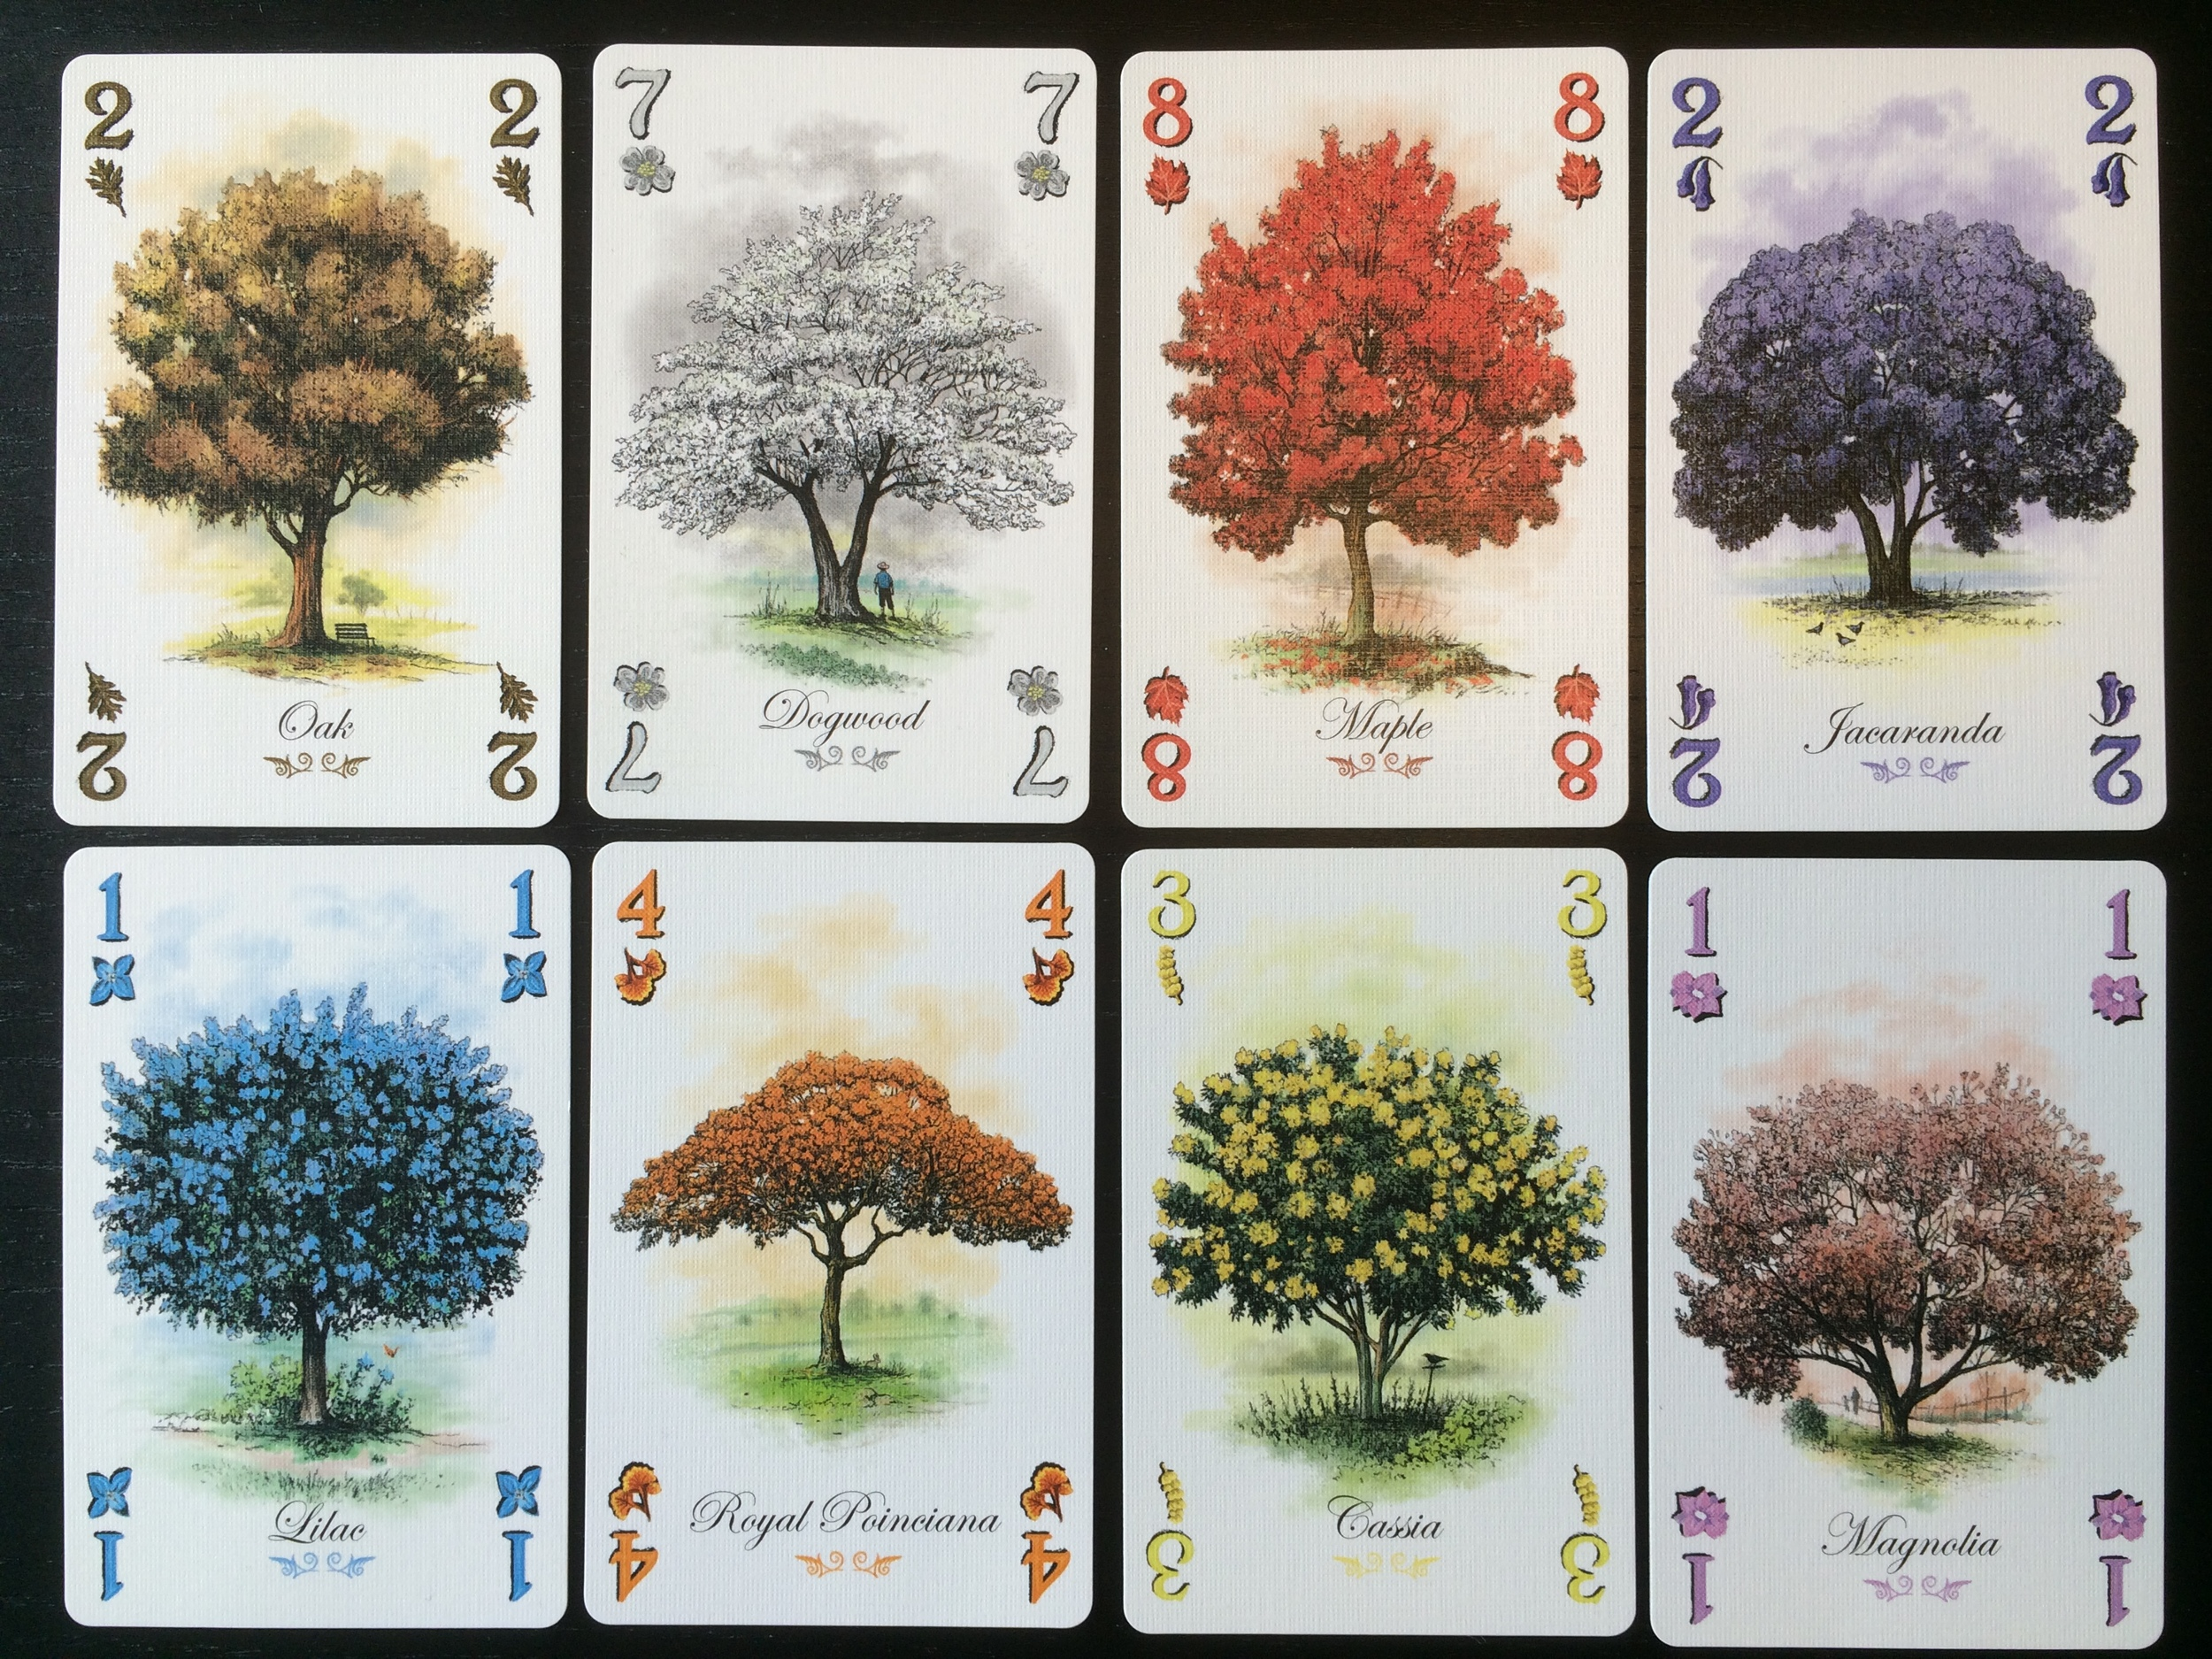 Arboretum - Meaningful Decisions: Dan Cassar on Design Choices in Arboretum